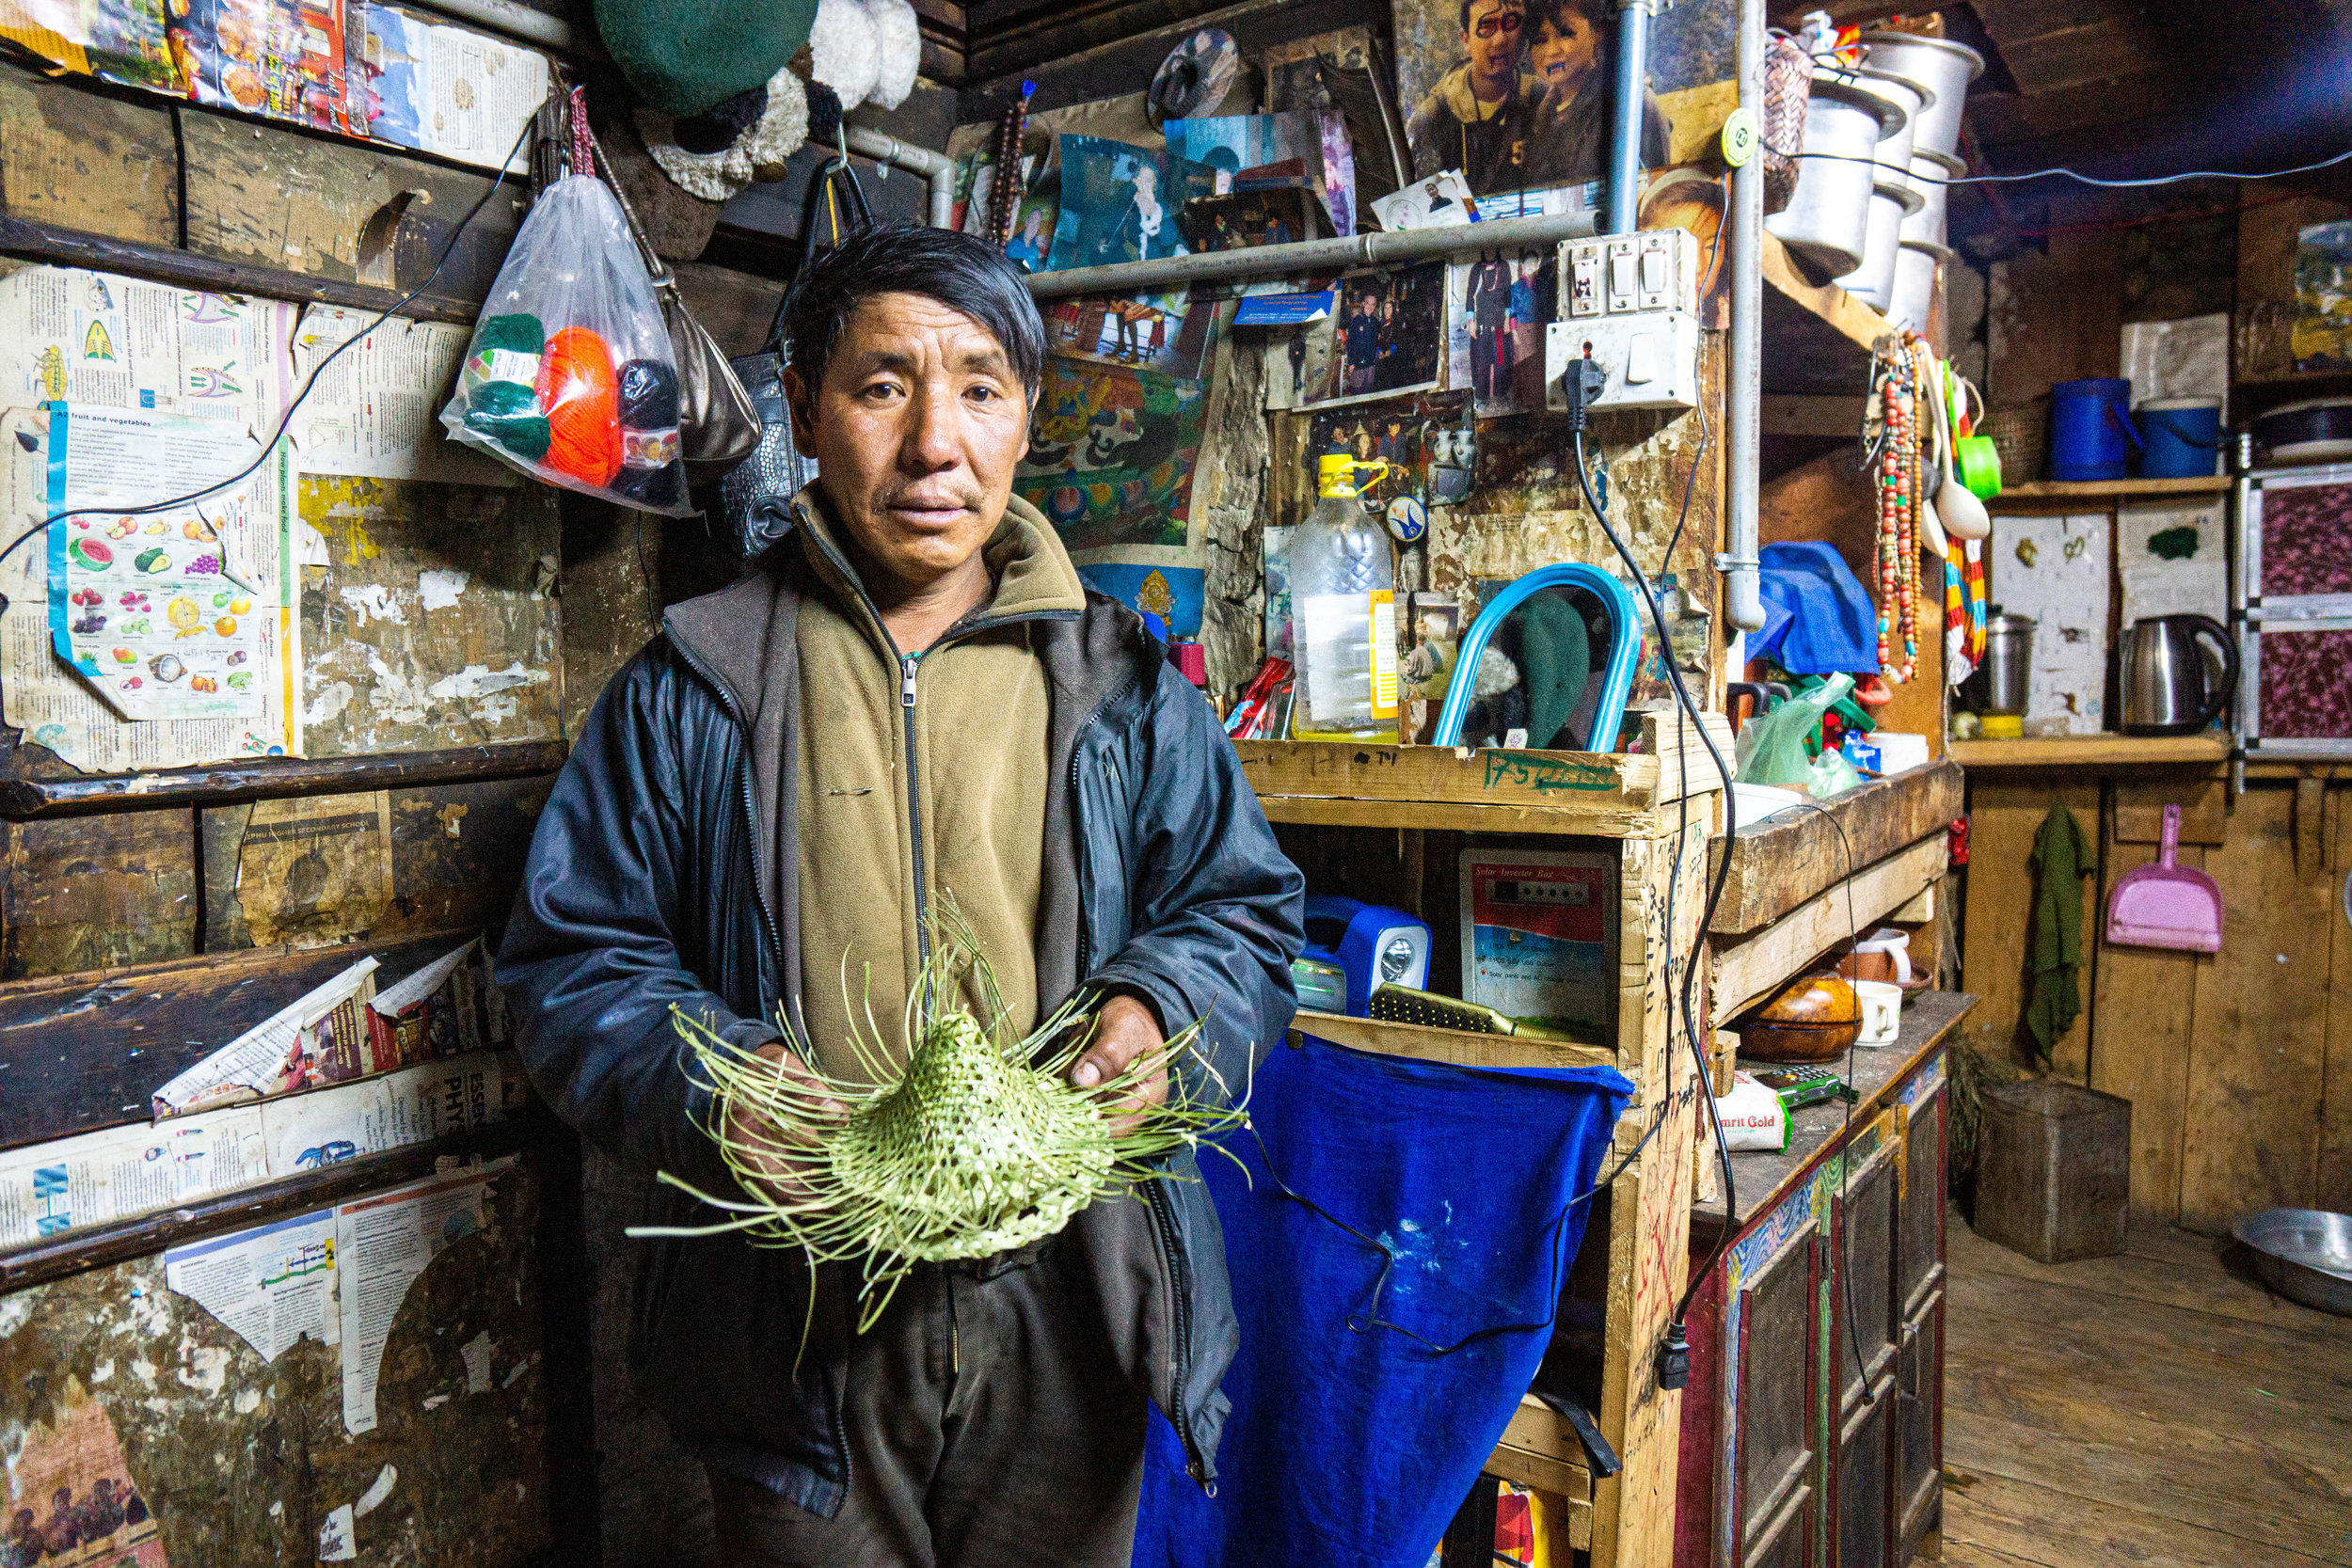 Tenzin is one of the last three conical hat makers